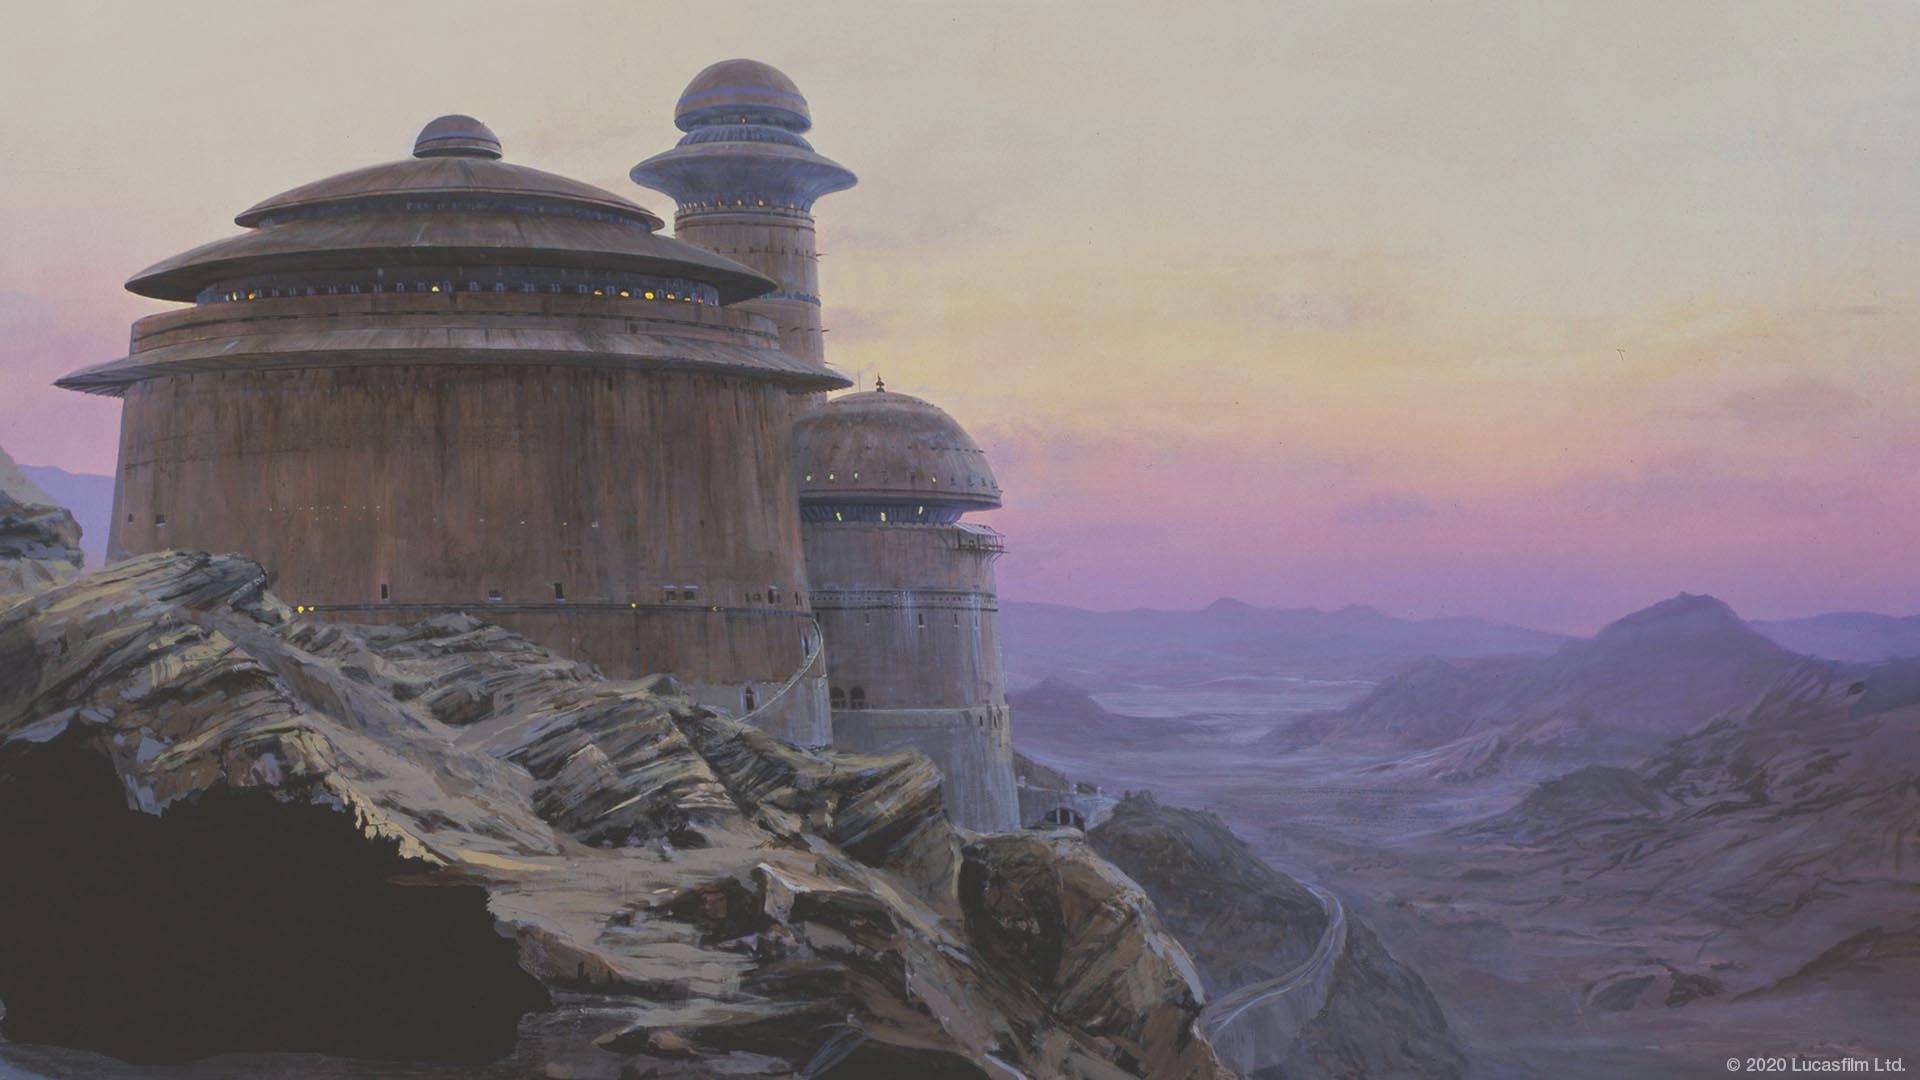 Star Wars virtual background: Tatooine